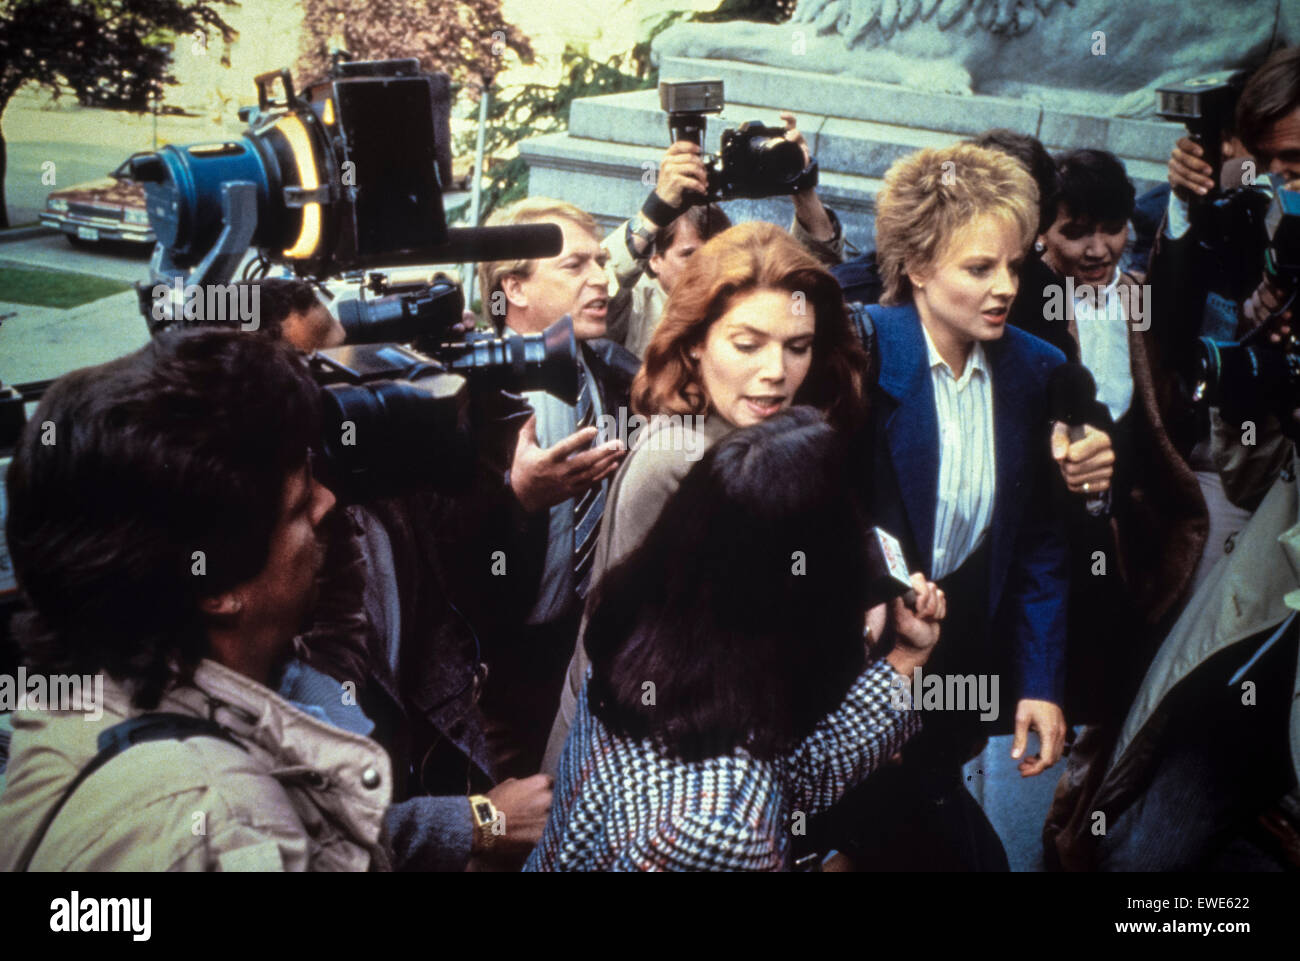 the accused stock photo royalty image alamy the accused 1988